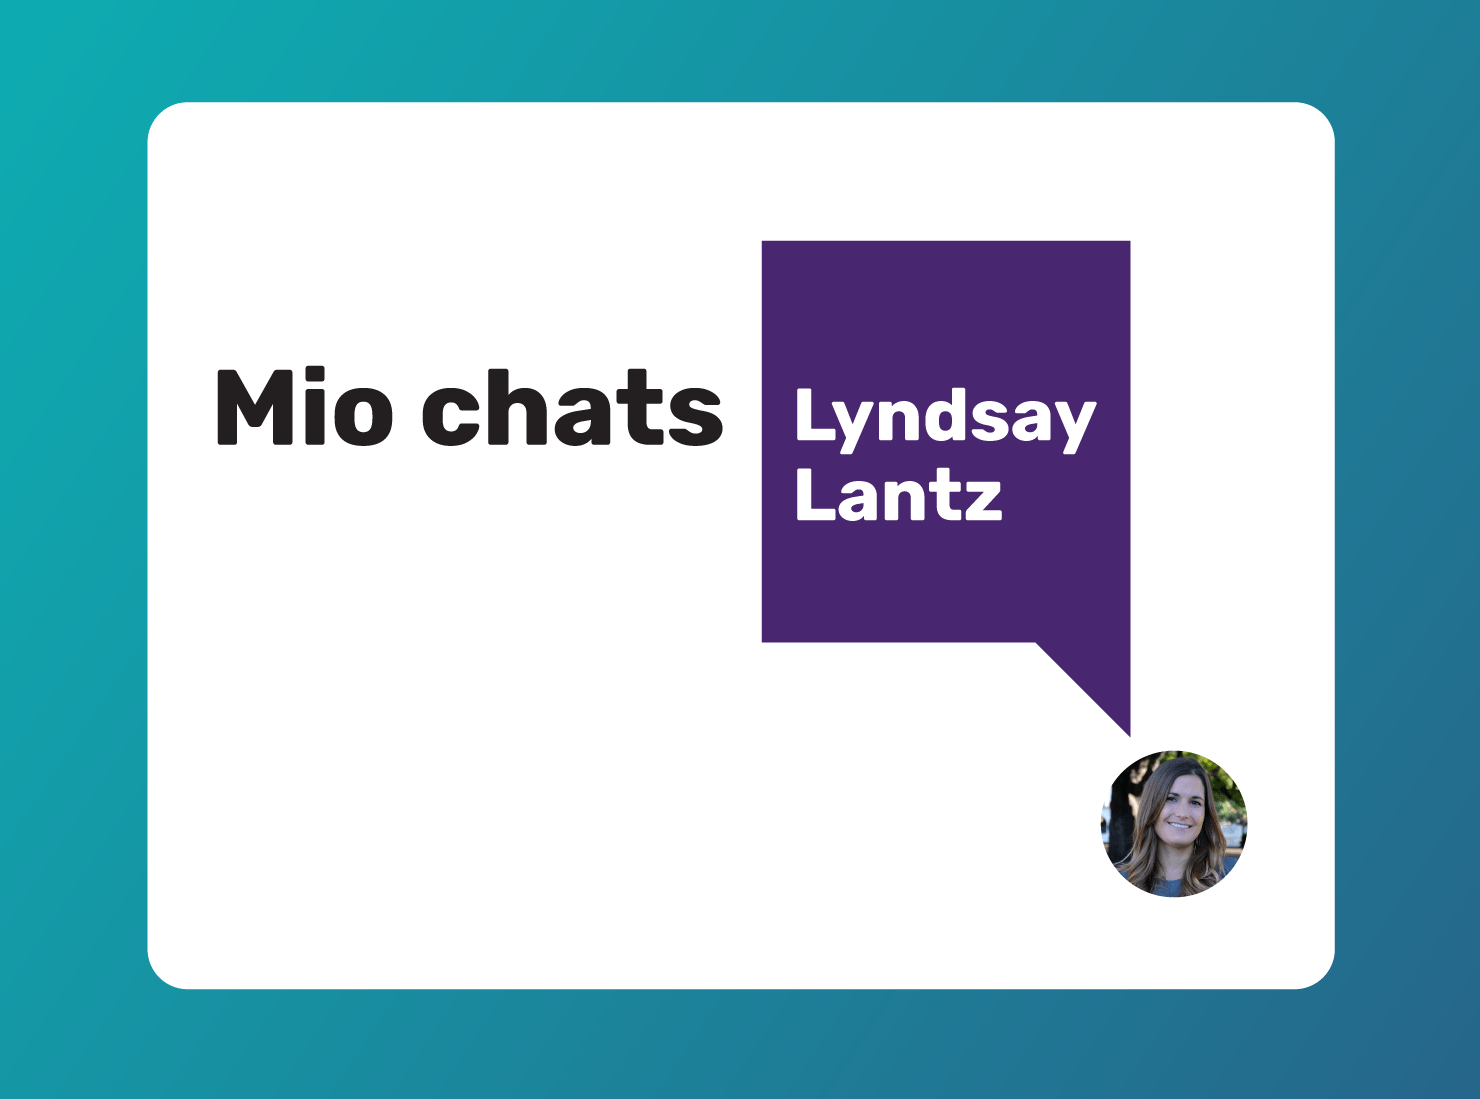 Mio chats with Lyndsay Lantz